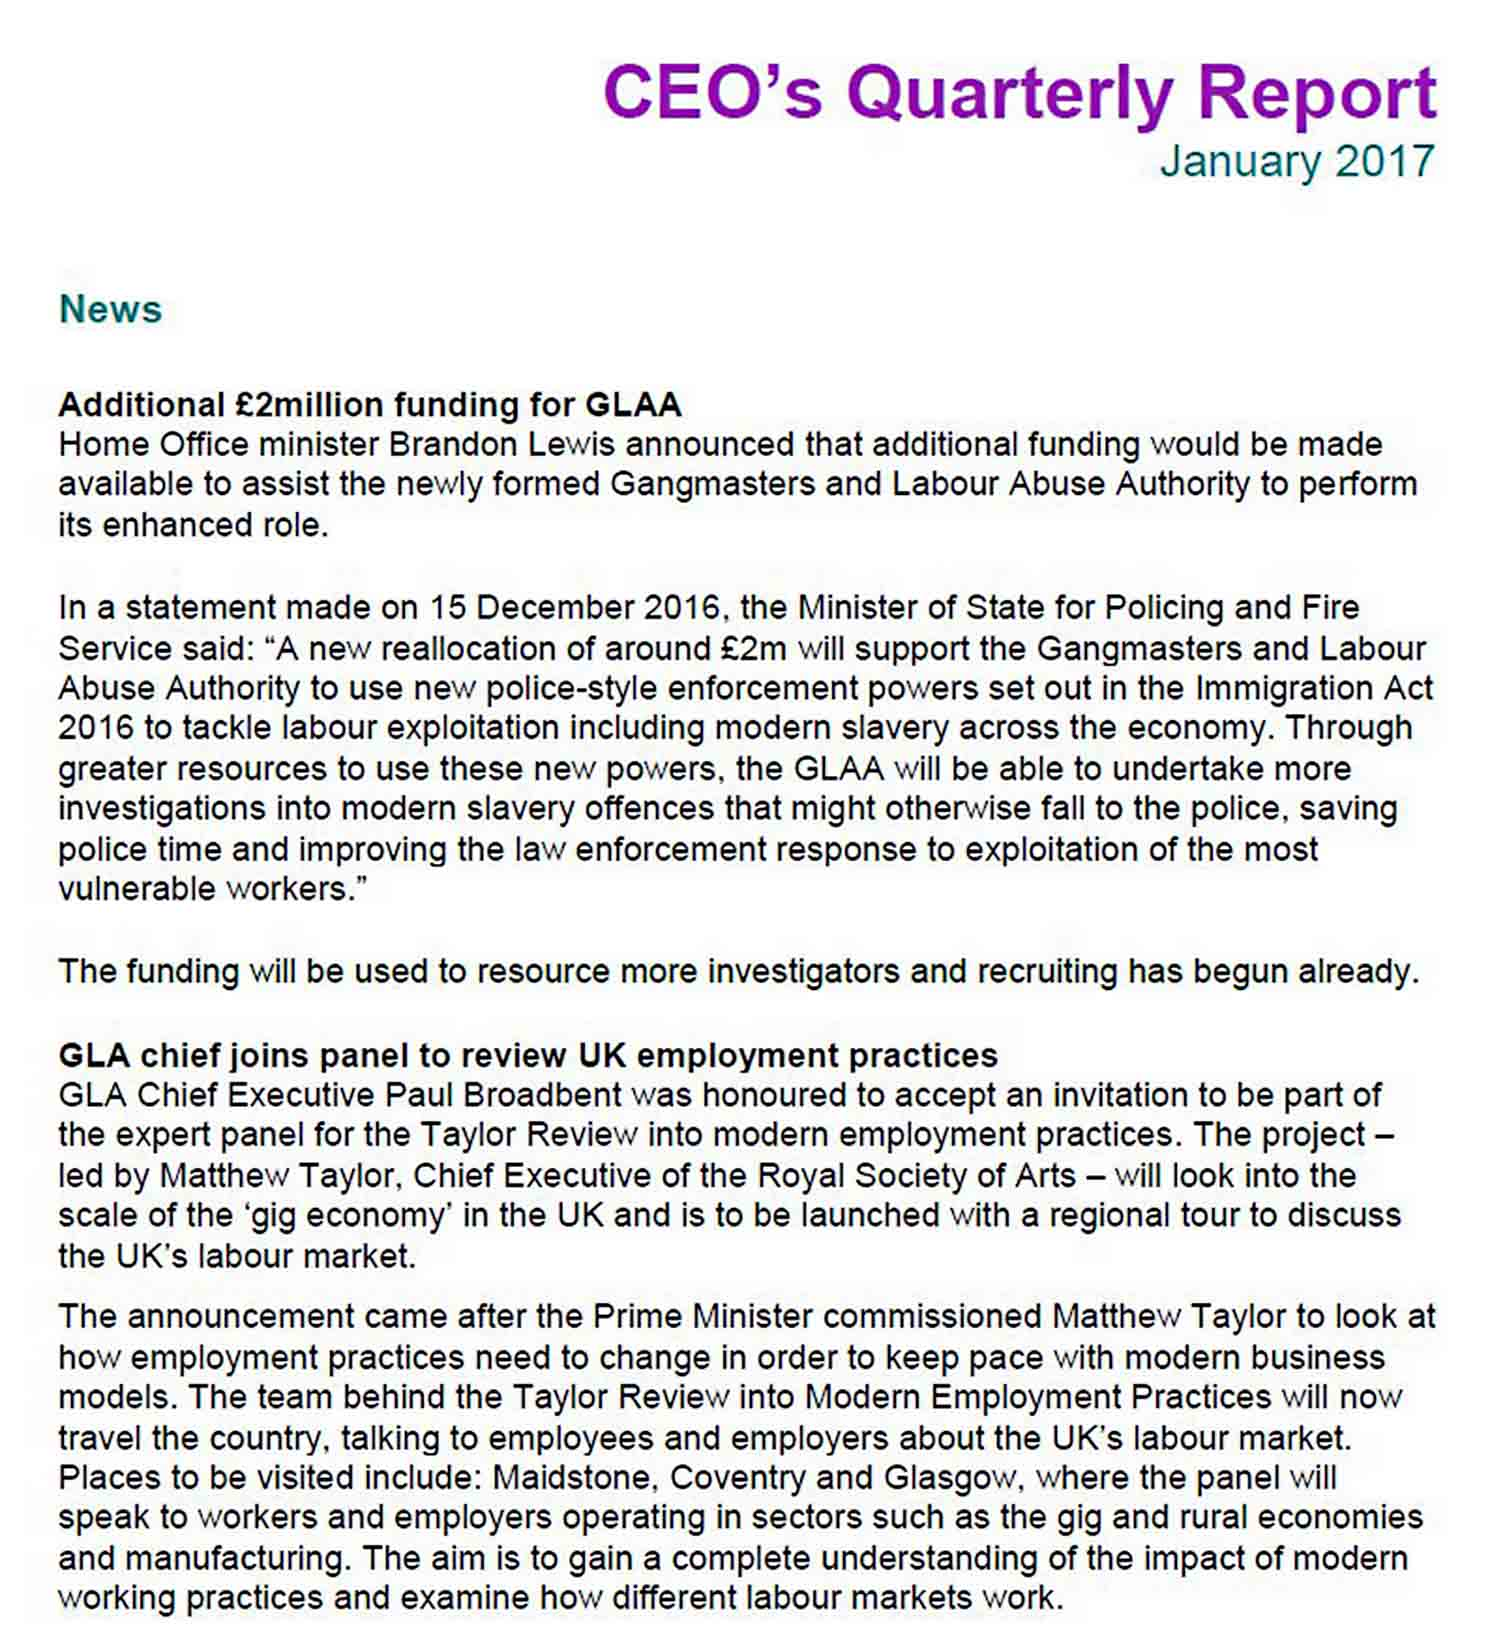 ceo report january 2017 sample